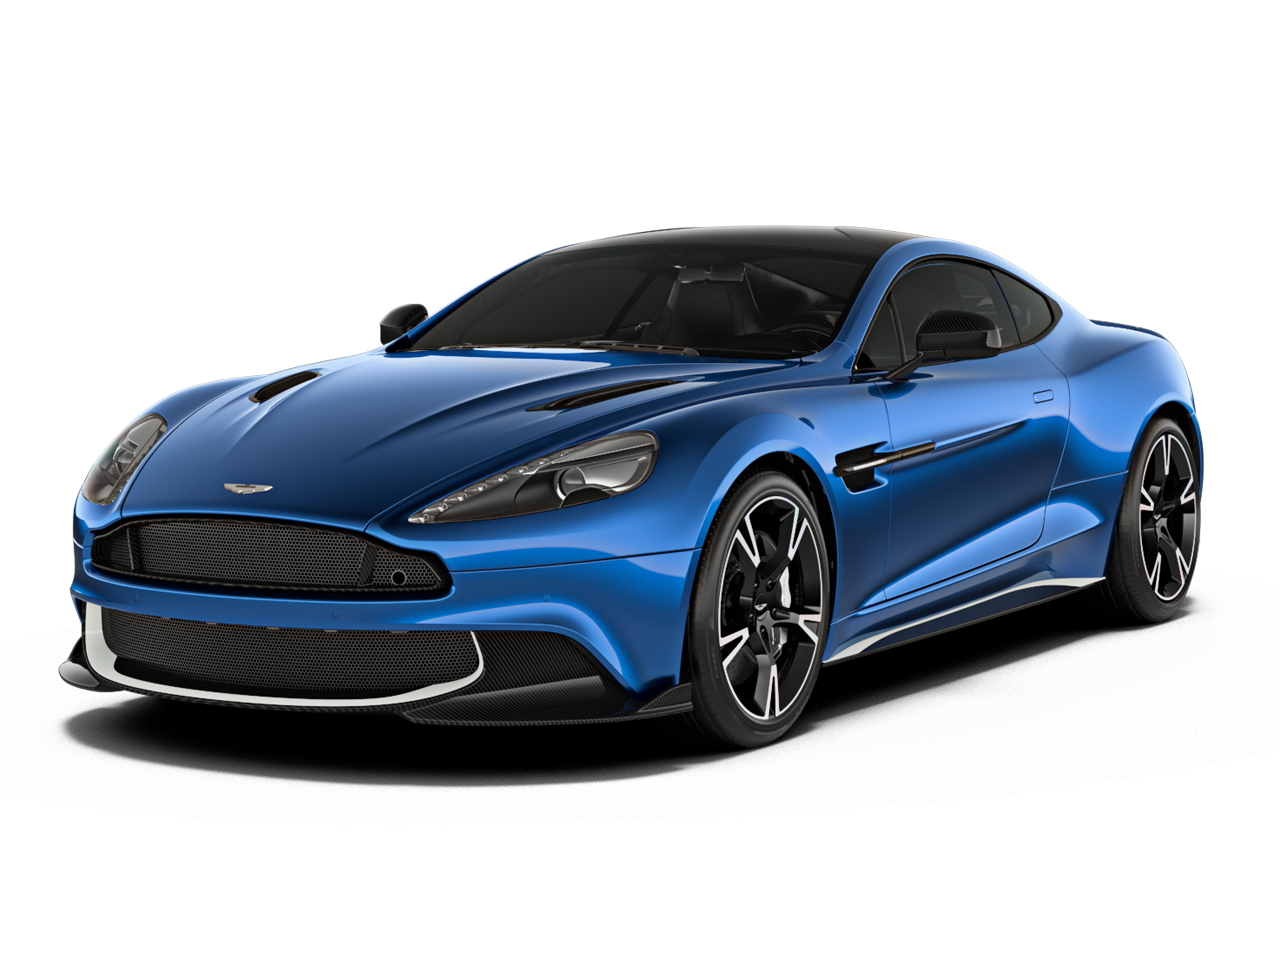 2018 aston martin vanquish s for sale in los angeles